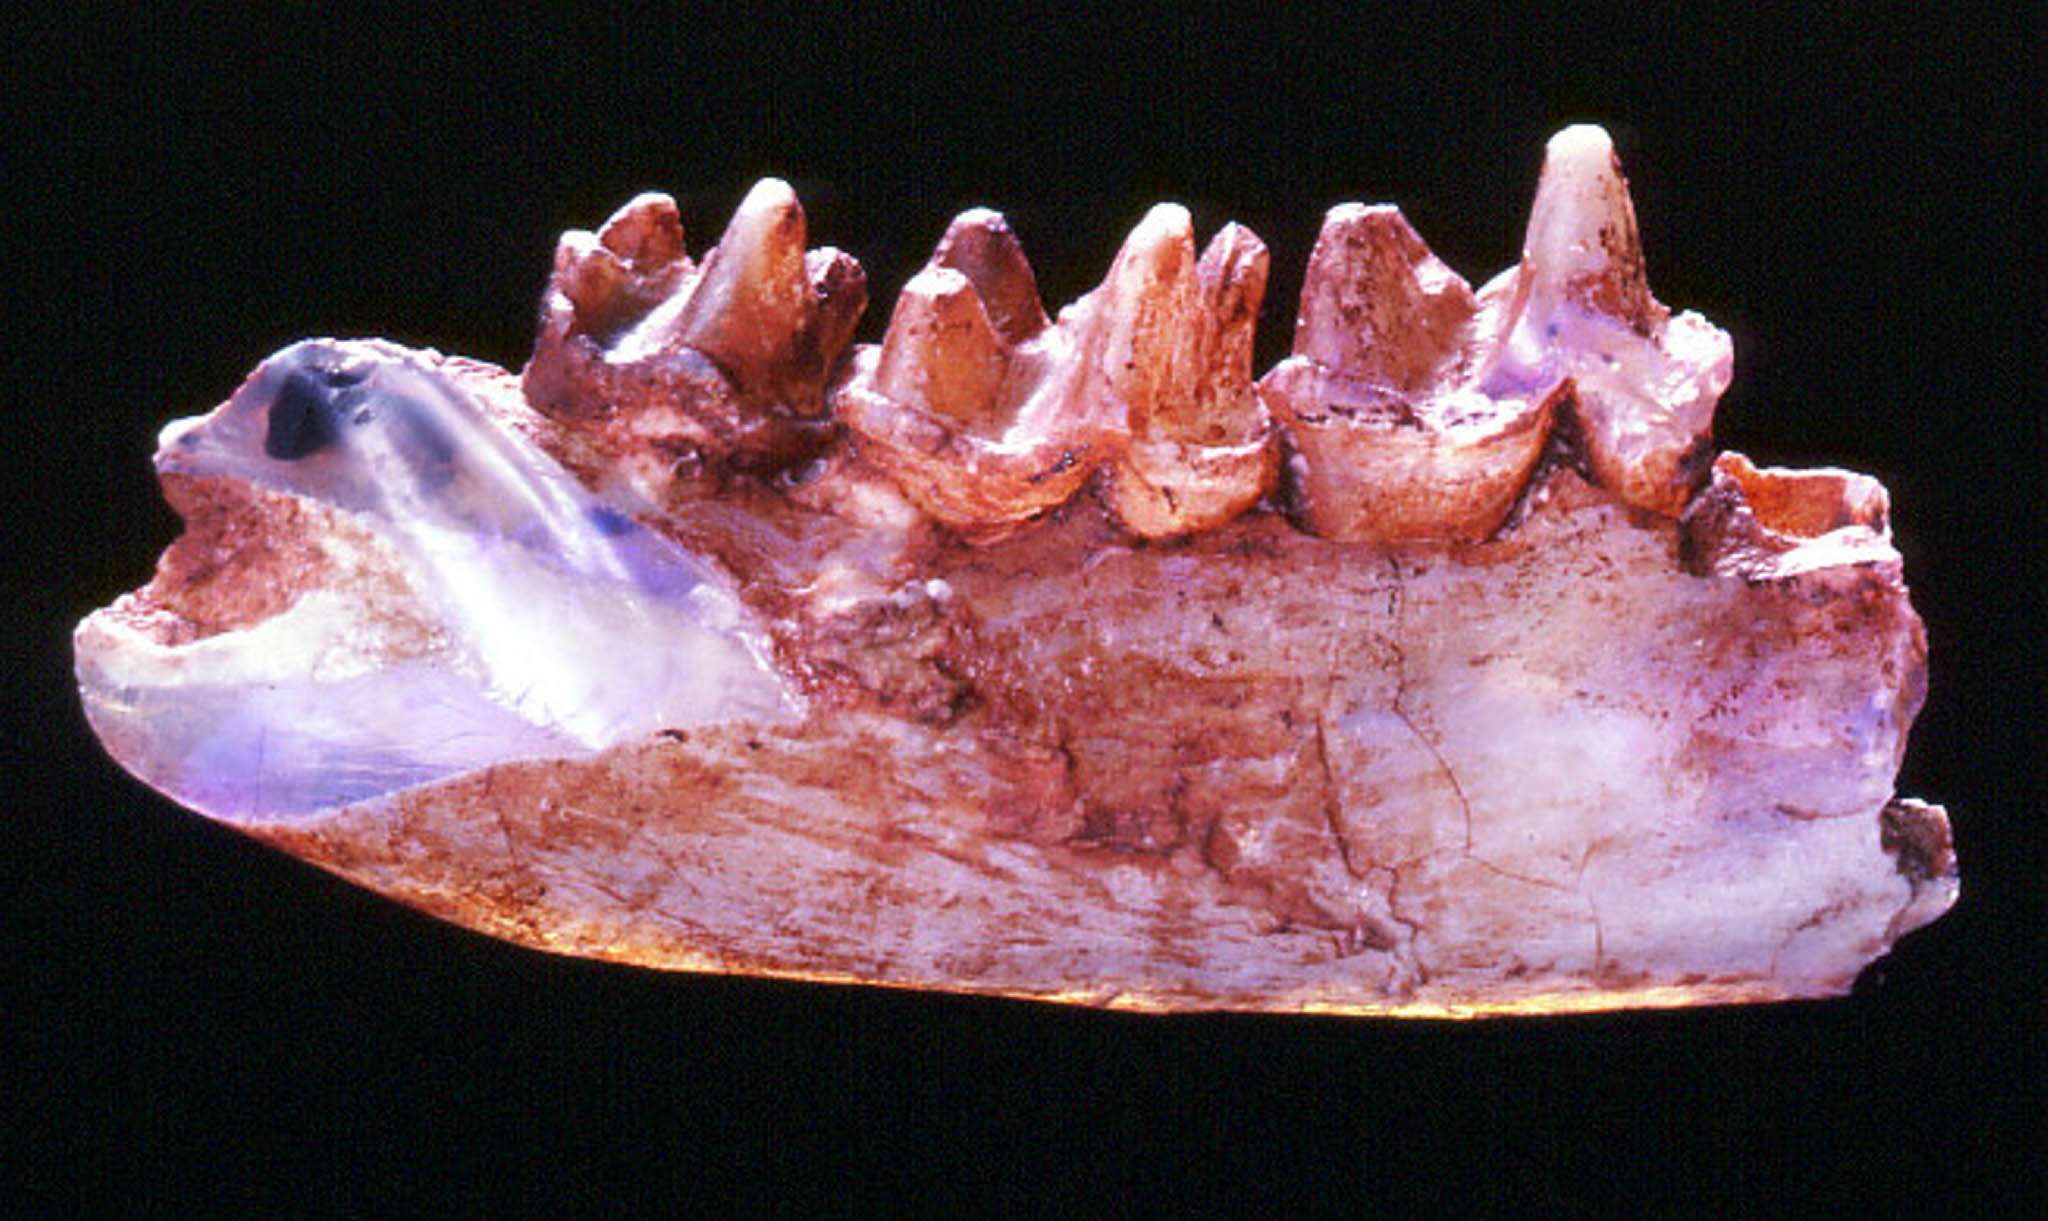 This opalized jawbone from Steropodon galmani, the first mammal from the Mesozoic Era found in Australia, hints at the spectacular diversity of early mammals on the continent.